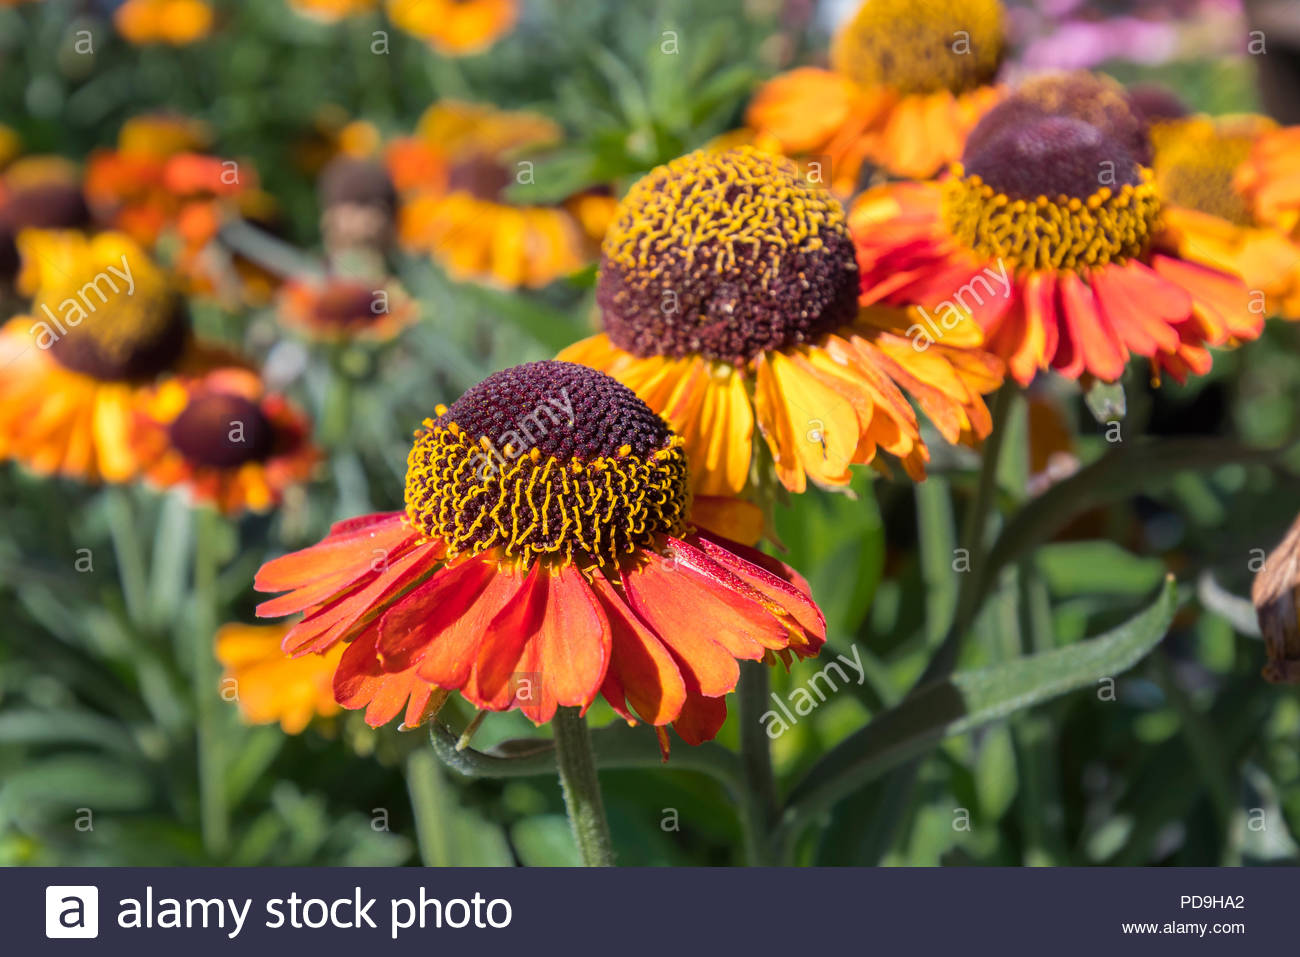 Closeup of the orange and yellow flowers of Helenium 'Short and Sassy' (AKA Helens flower), in Summer (August) in West Sussex, UK. - Stock Image